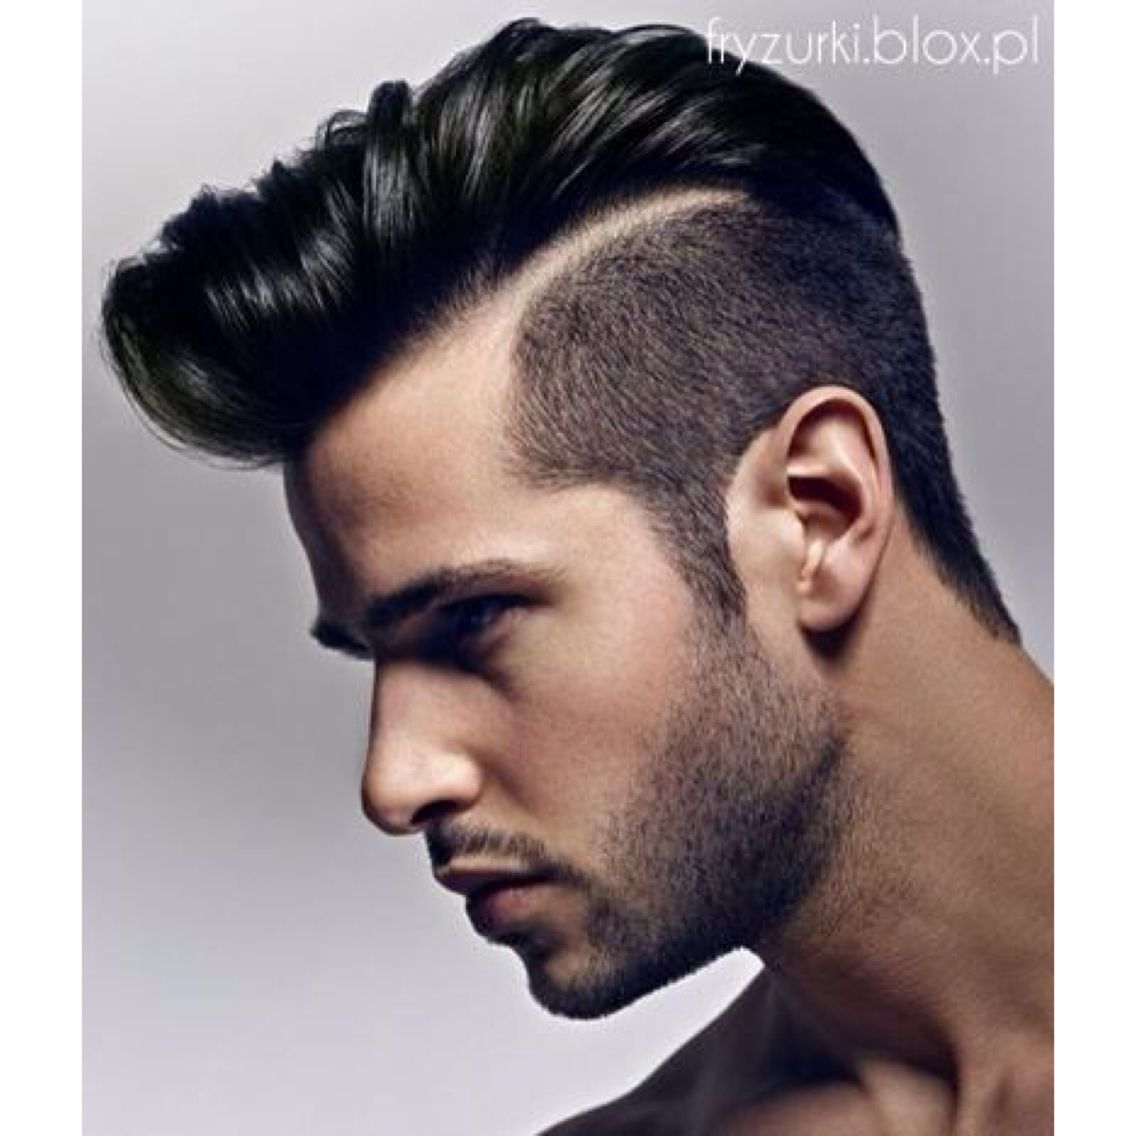 Trendy men haircuts ol   hair cuts  pinterest  ol hairstyle men and haircuts